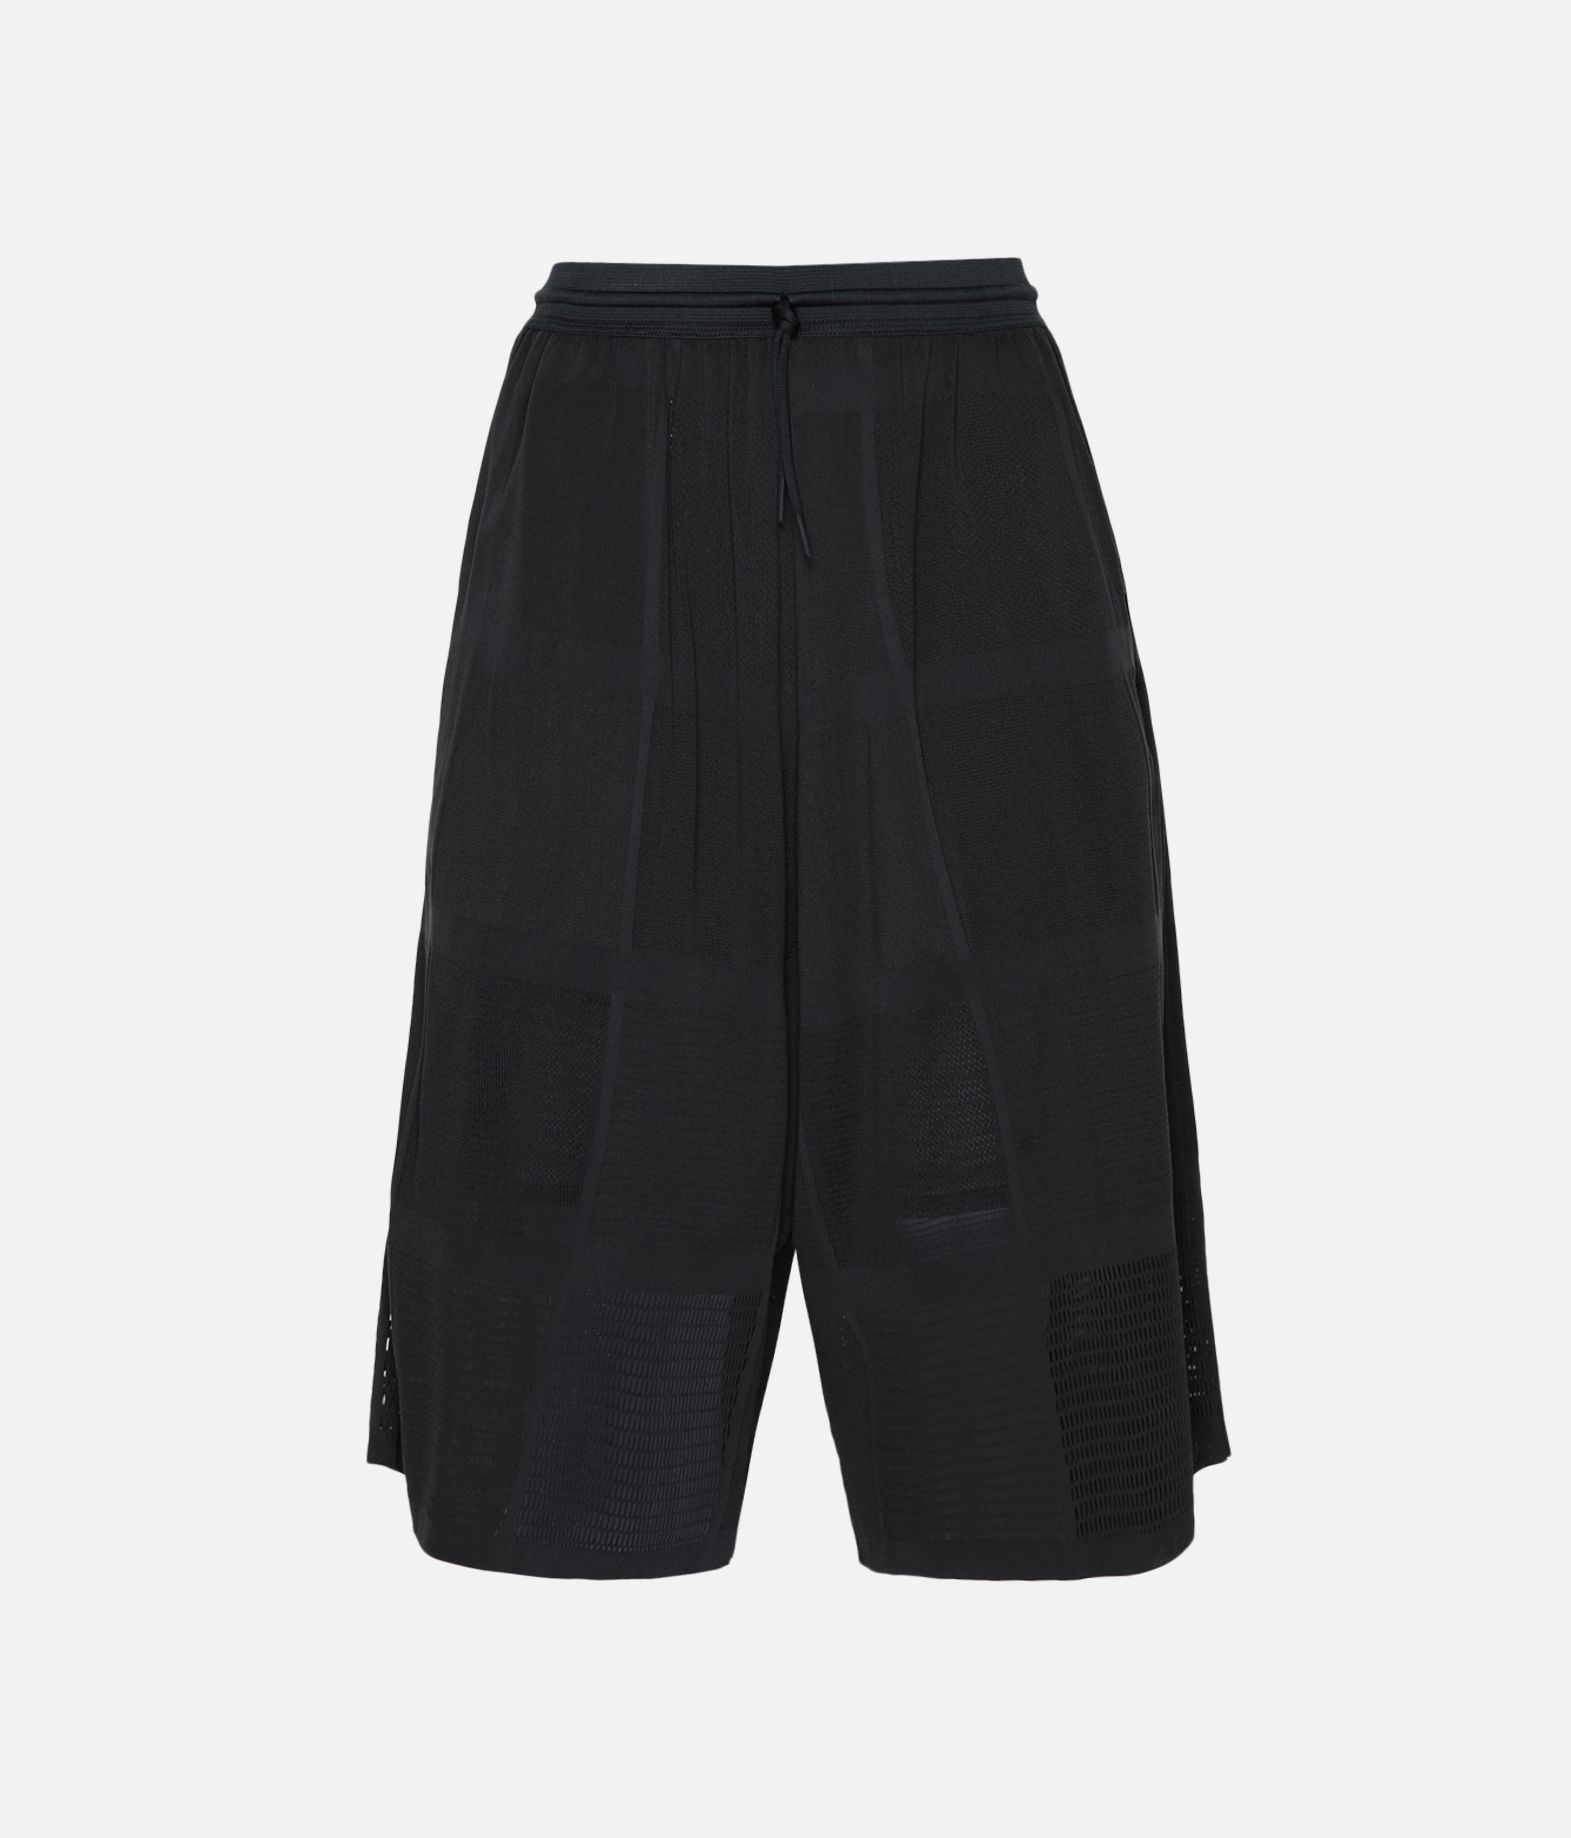 Y-3 Y-3 Patchwork Shorts Bermuda shorts Woman f